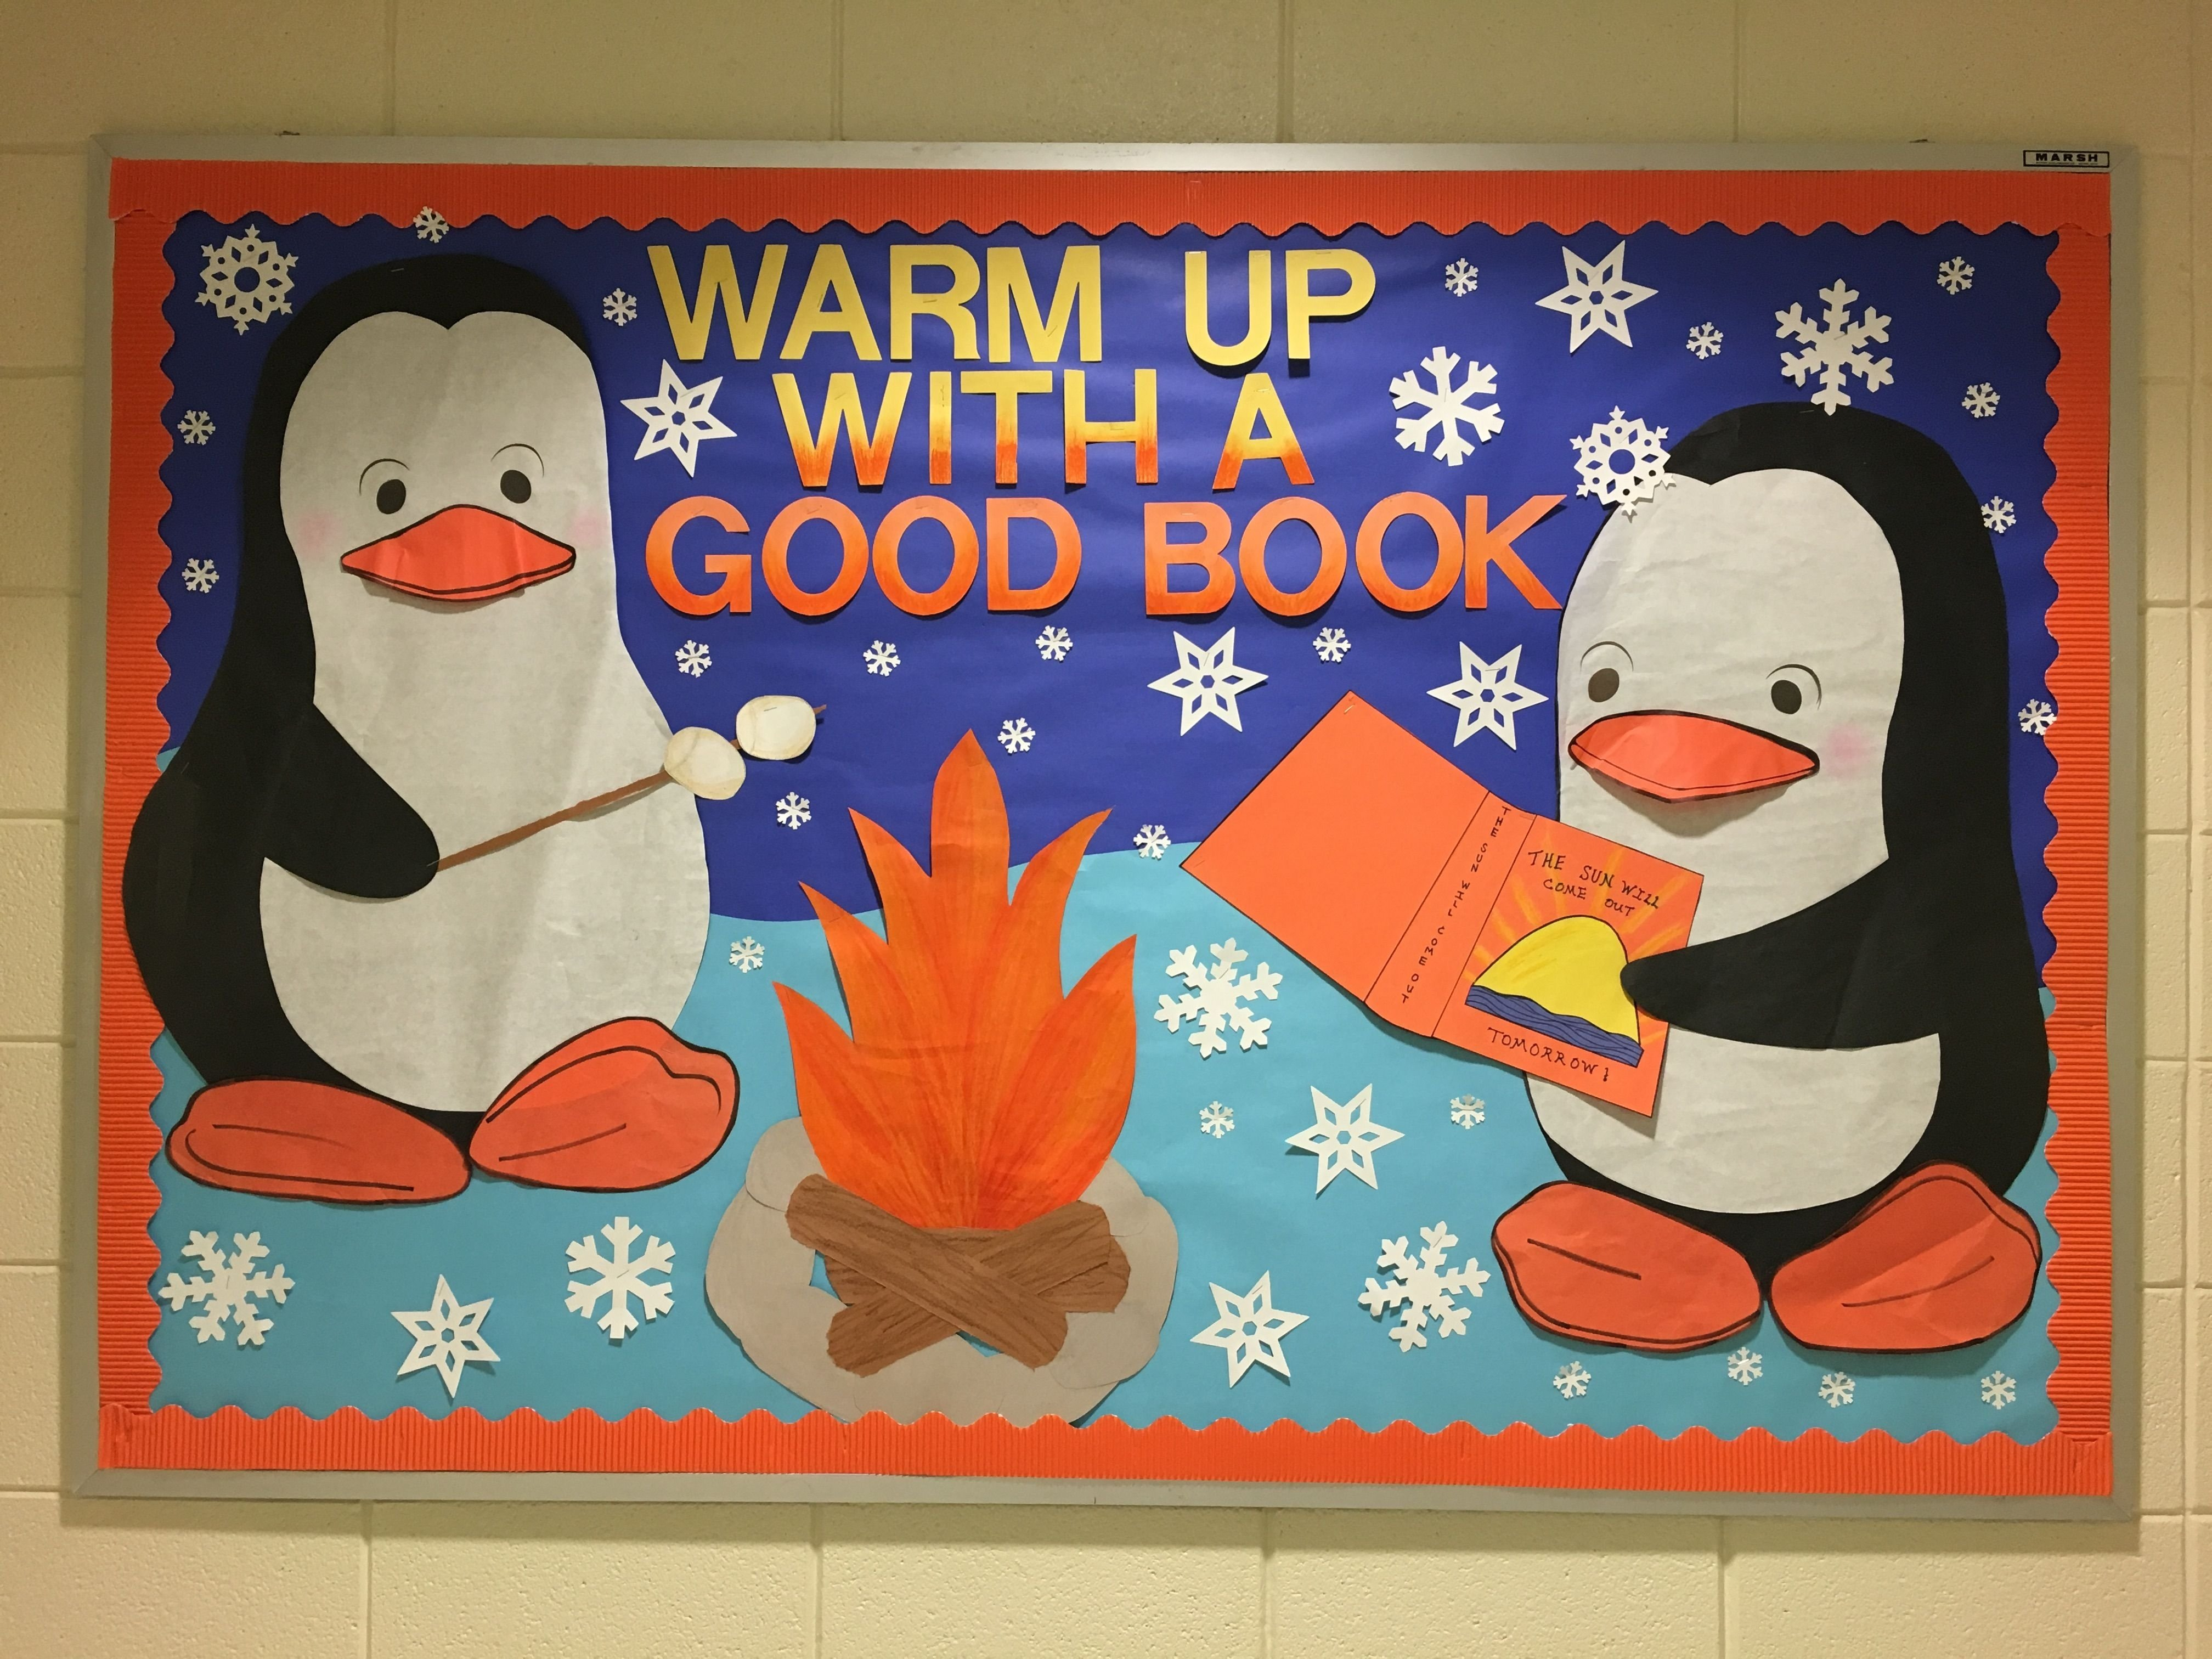 10 Ideal Bulletin Board Ideas For January winter school library bulletin board warm up with a good book 2 2021